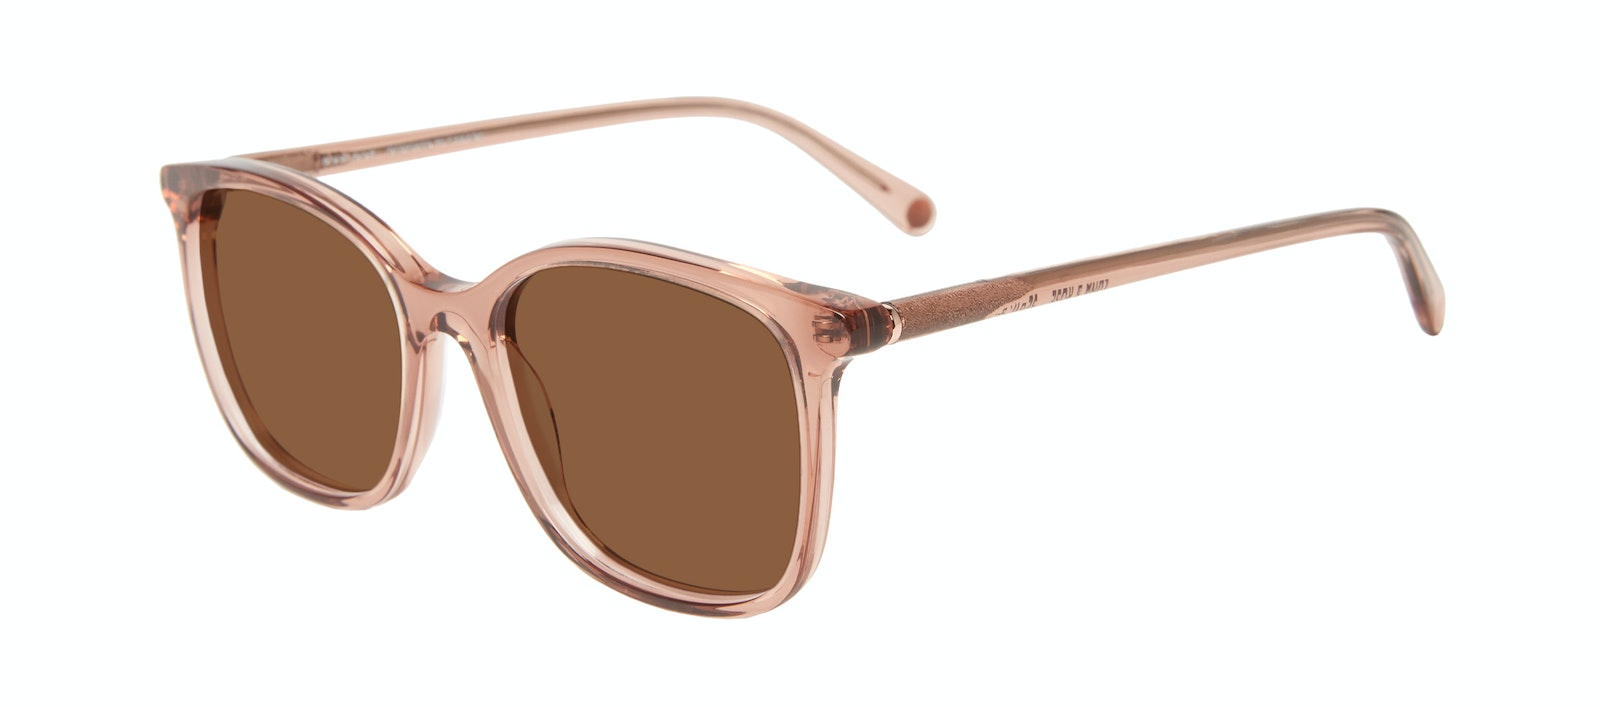 Affordable Fashion Glasses Square Sunglasses Women Luna Rose Tilt